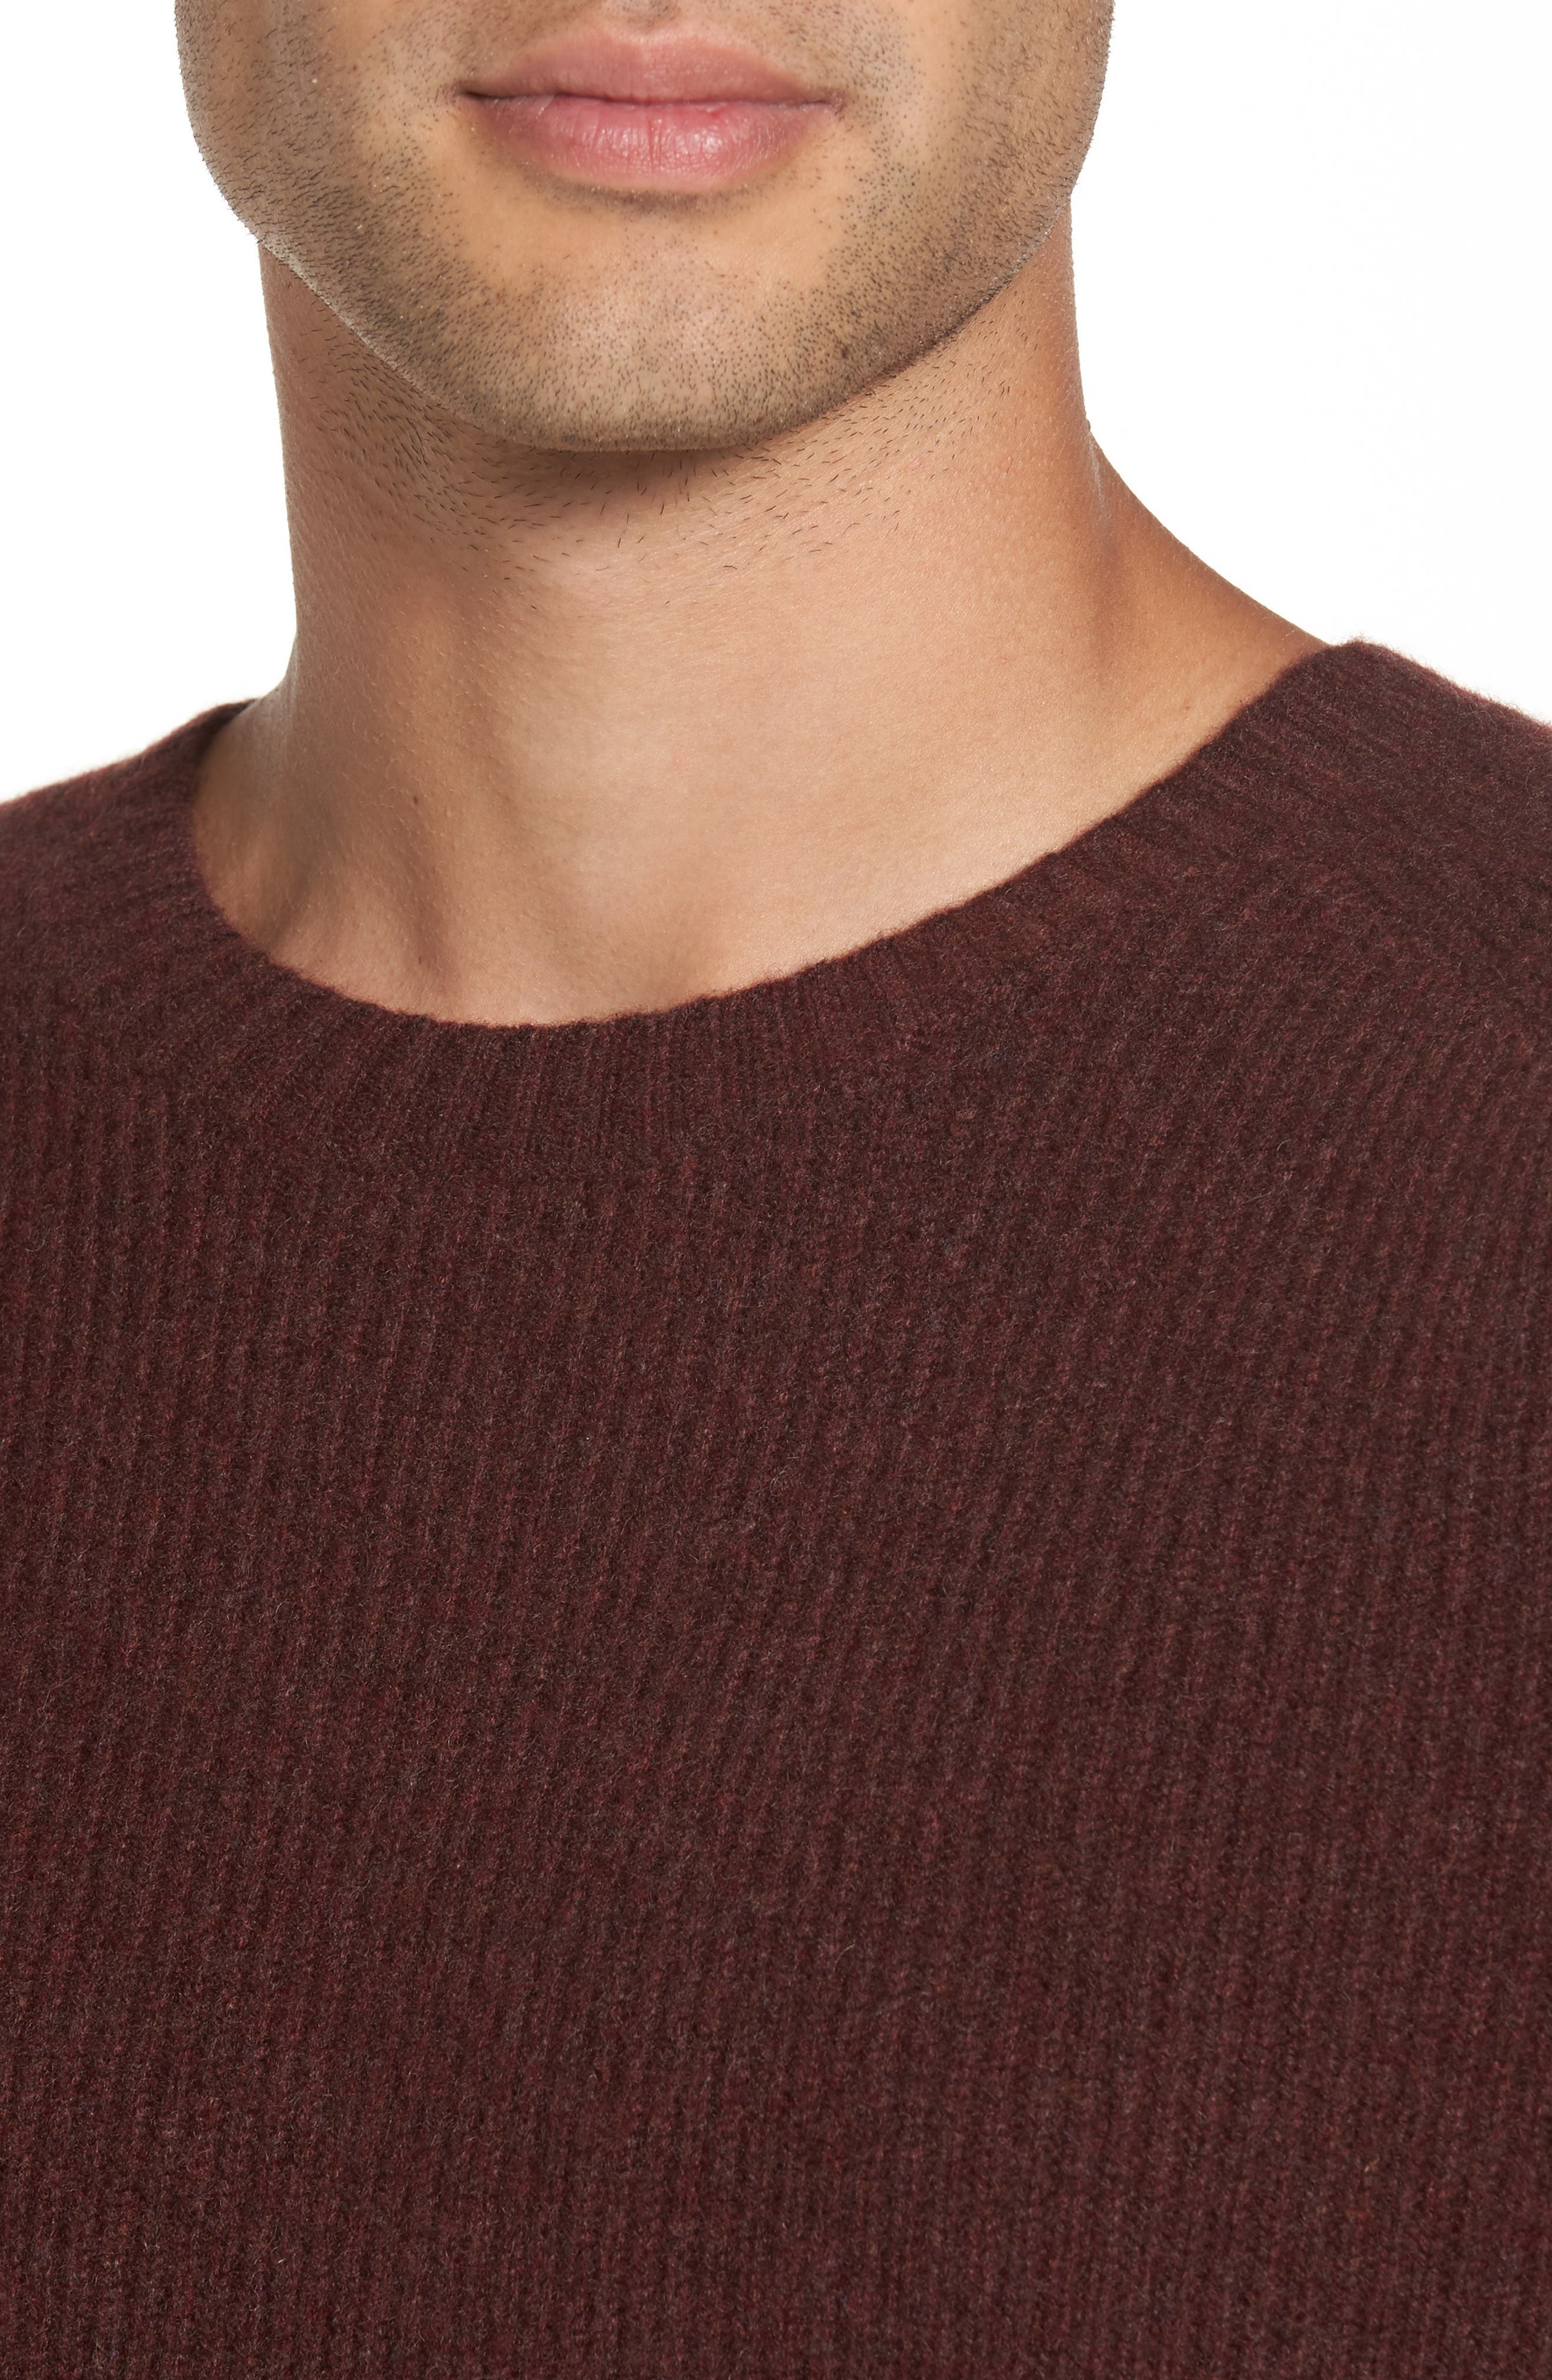 Ribbed Wool & Cashmere Raglan Sweater,                             Alternate thumbnail 16, color,